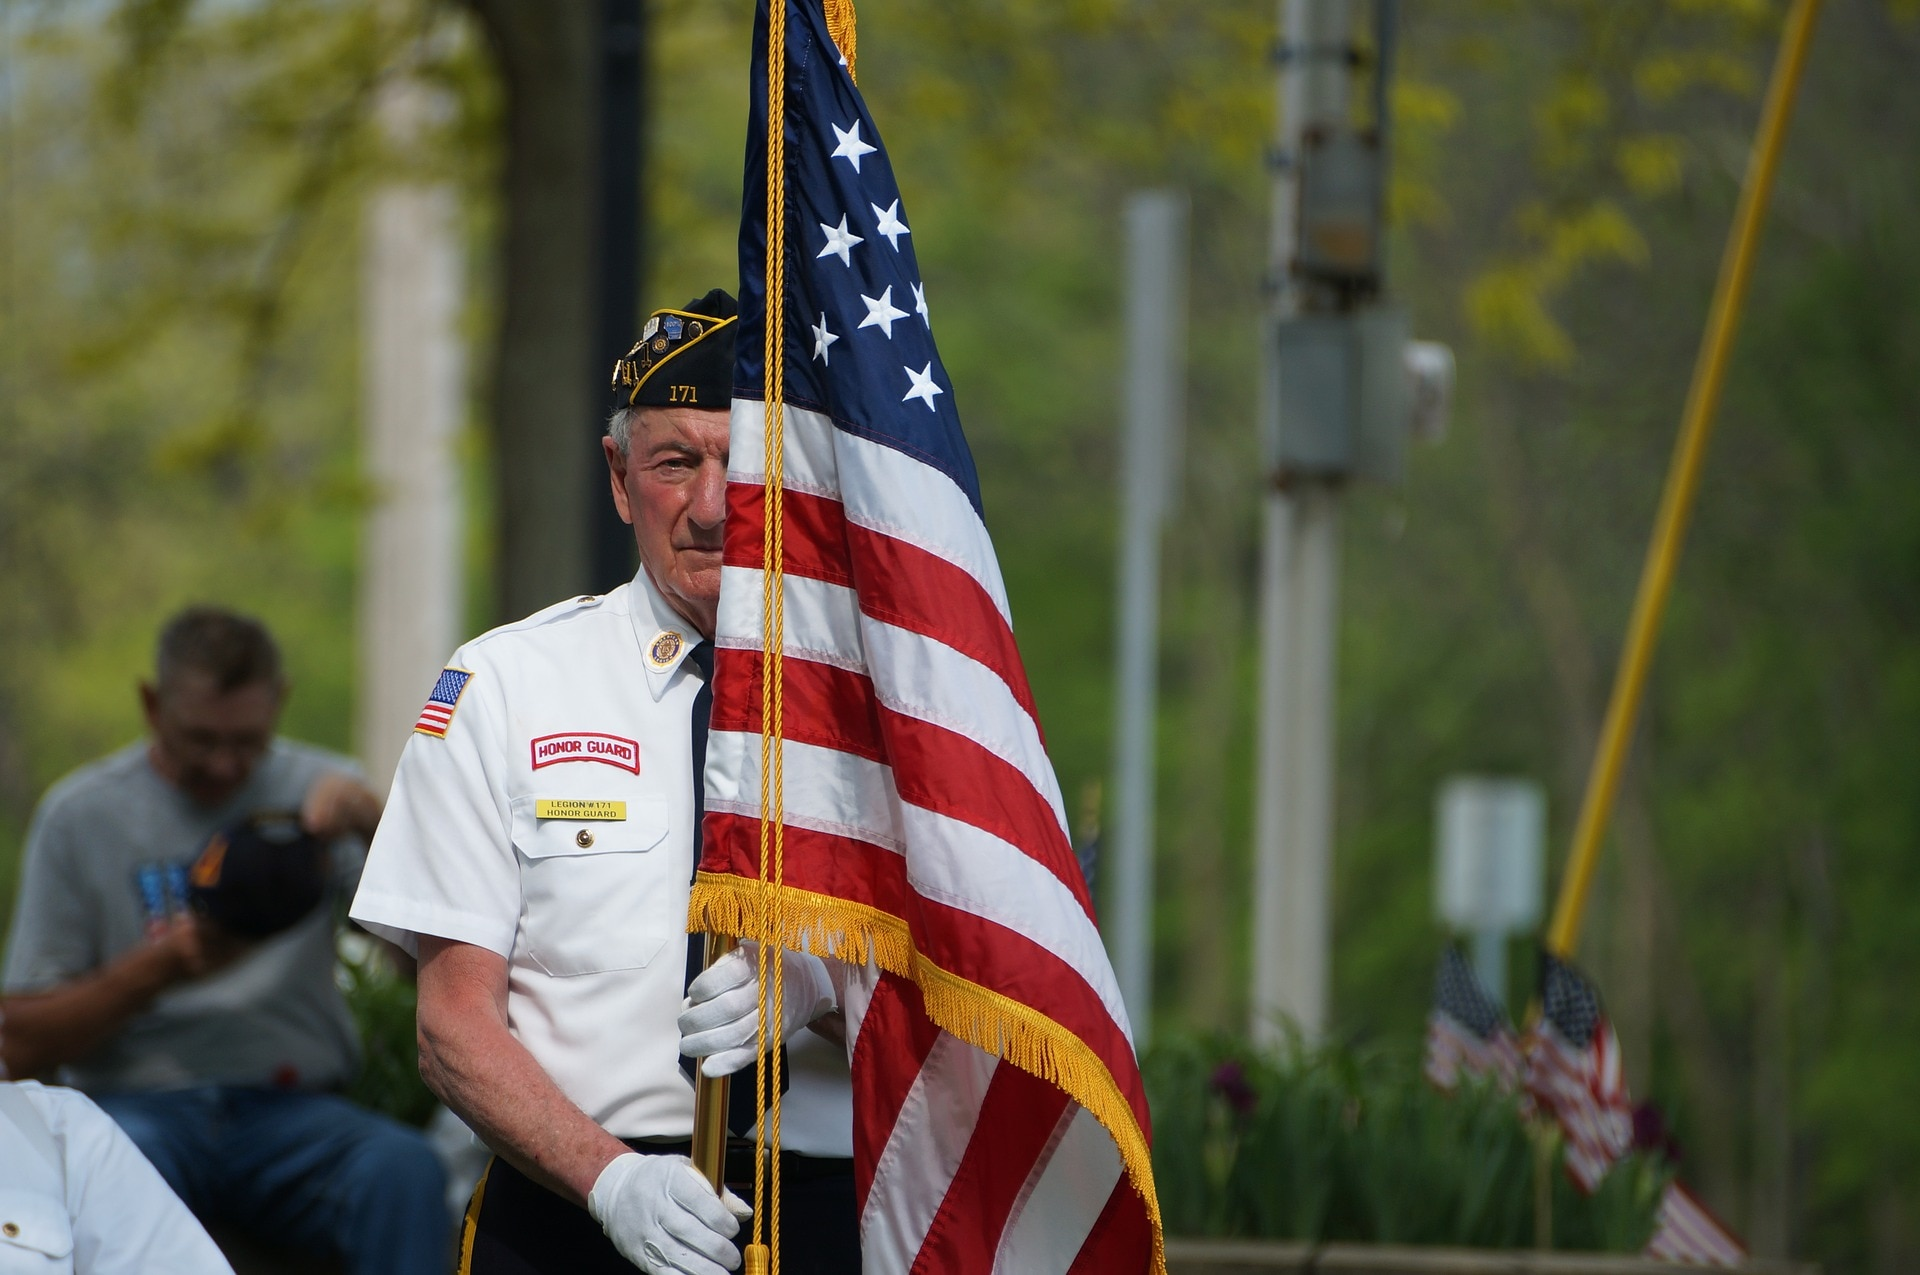 A veteran carrying the United States flag.